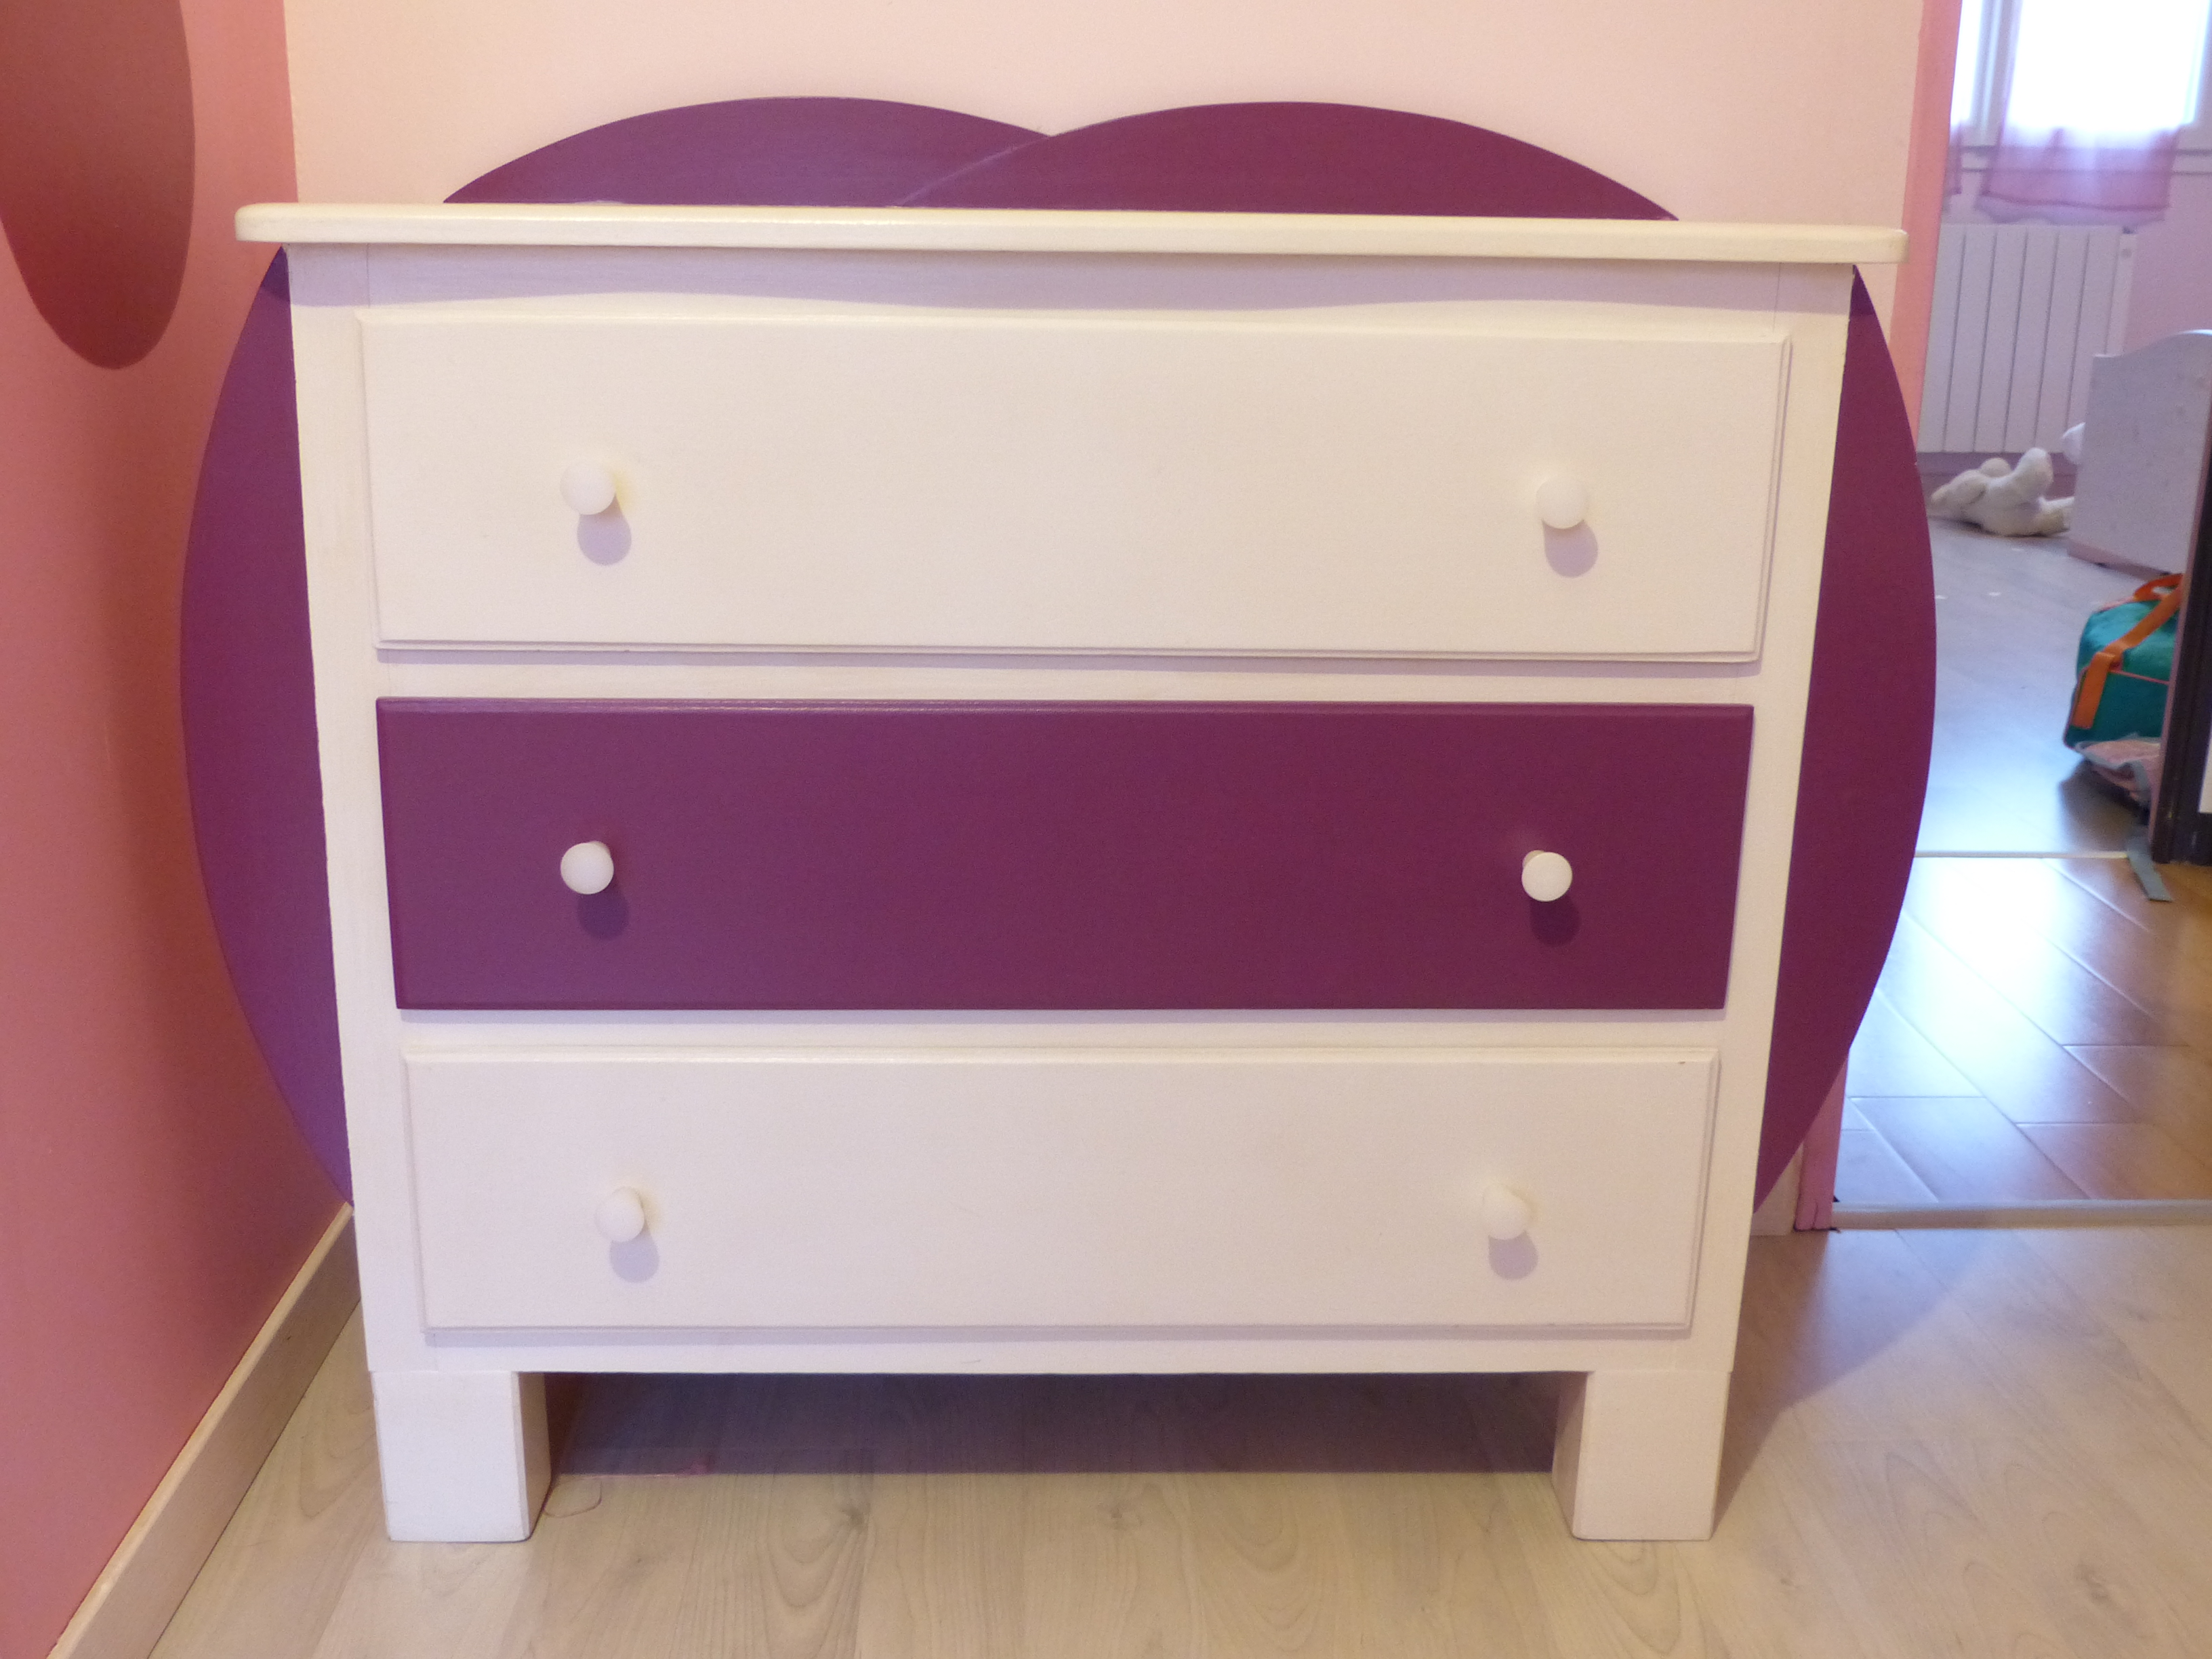 Customiser Commode Malm Customiser Commode Koppang Diy With Customiser Commode